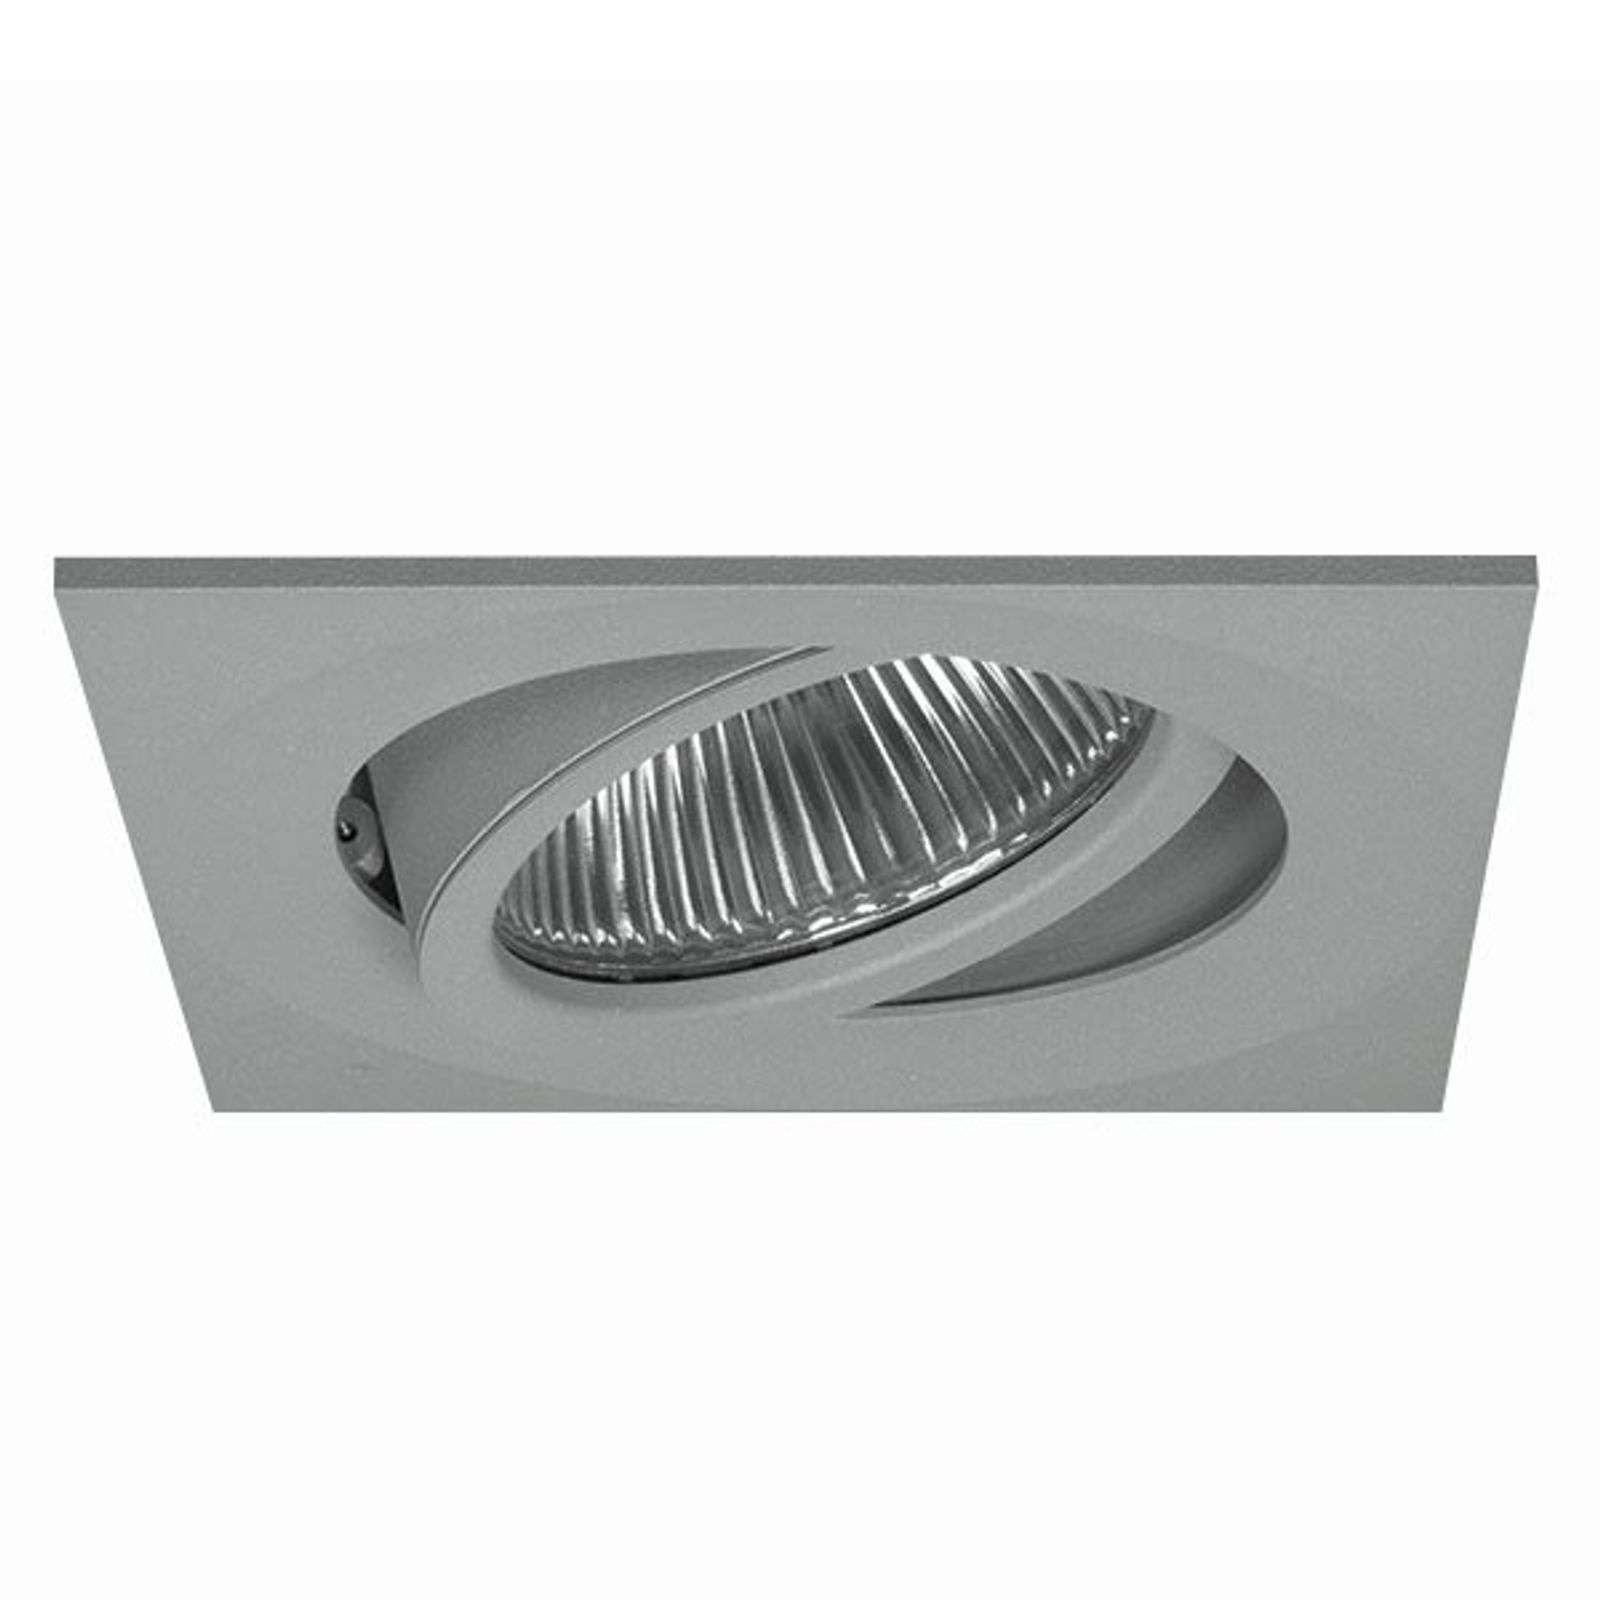 Spot encastrable LED CSA72 Square 35° 29W 3170lm